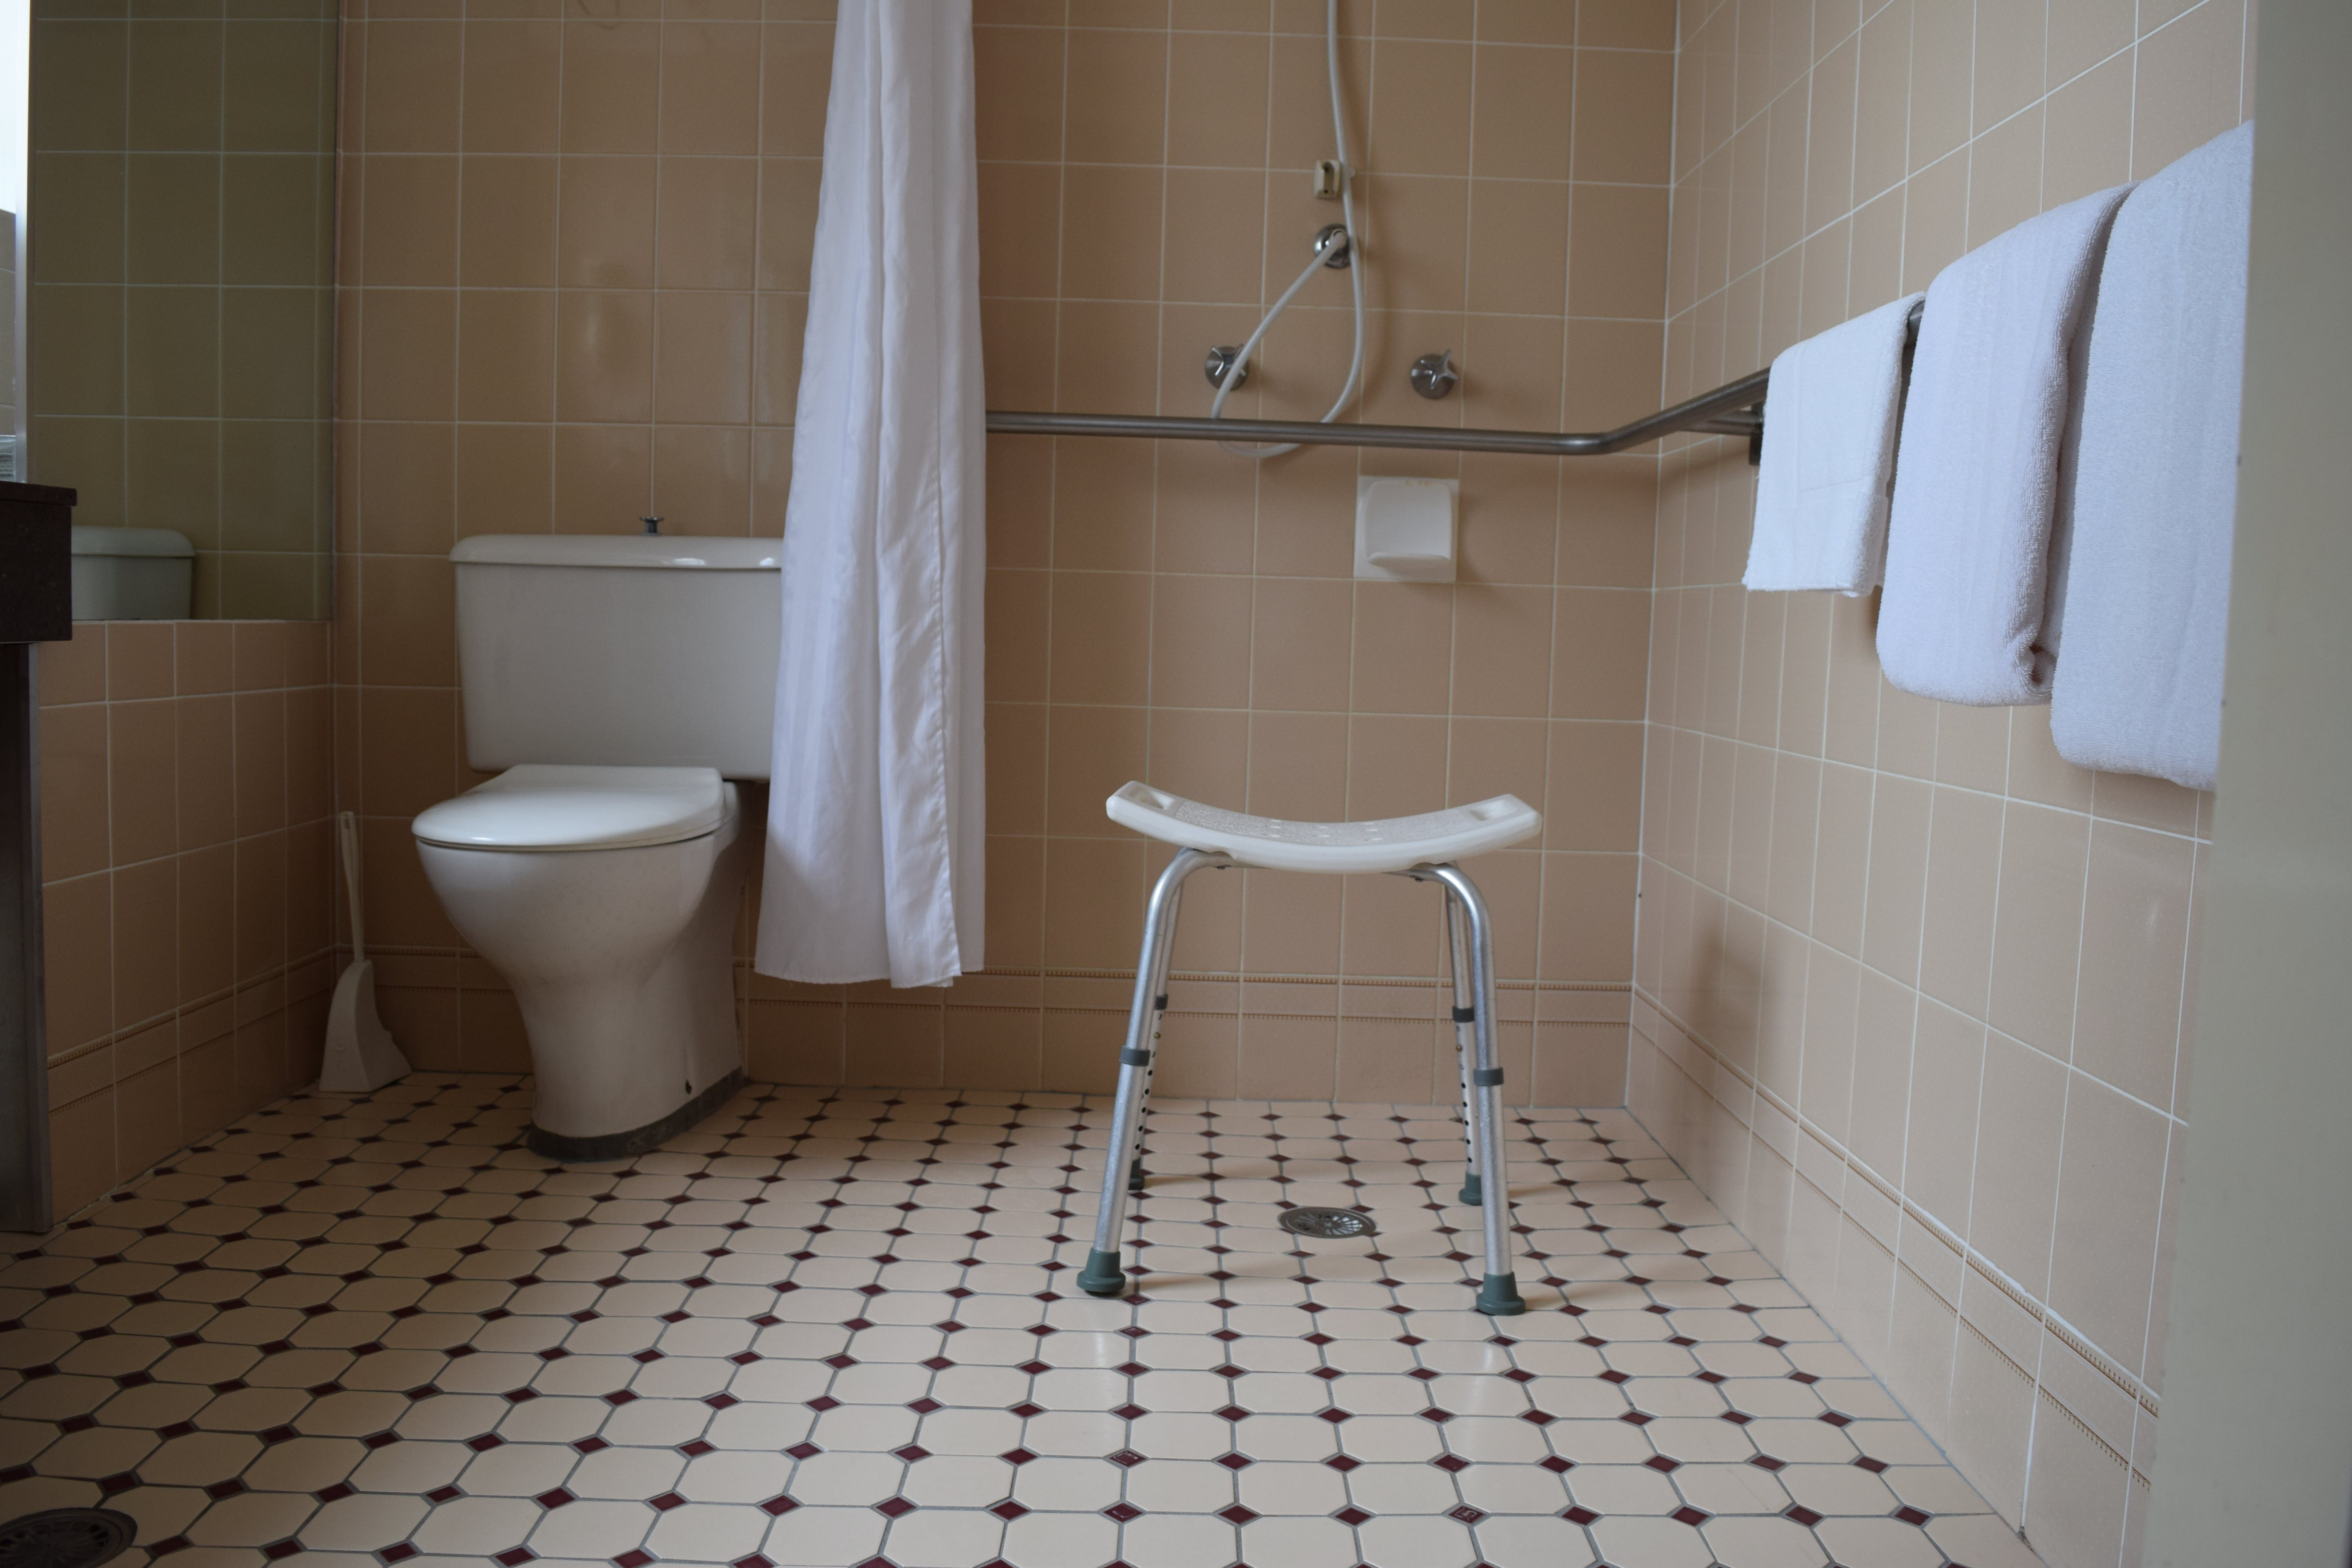 Queen Deluxe Bathroom also doubles as a wheelchair access room when required. Room includes a Queen and Single for carer.